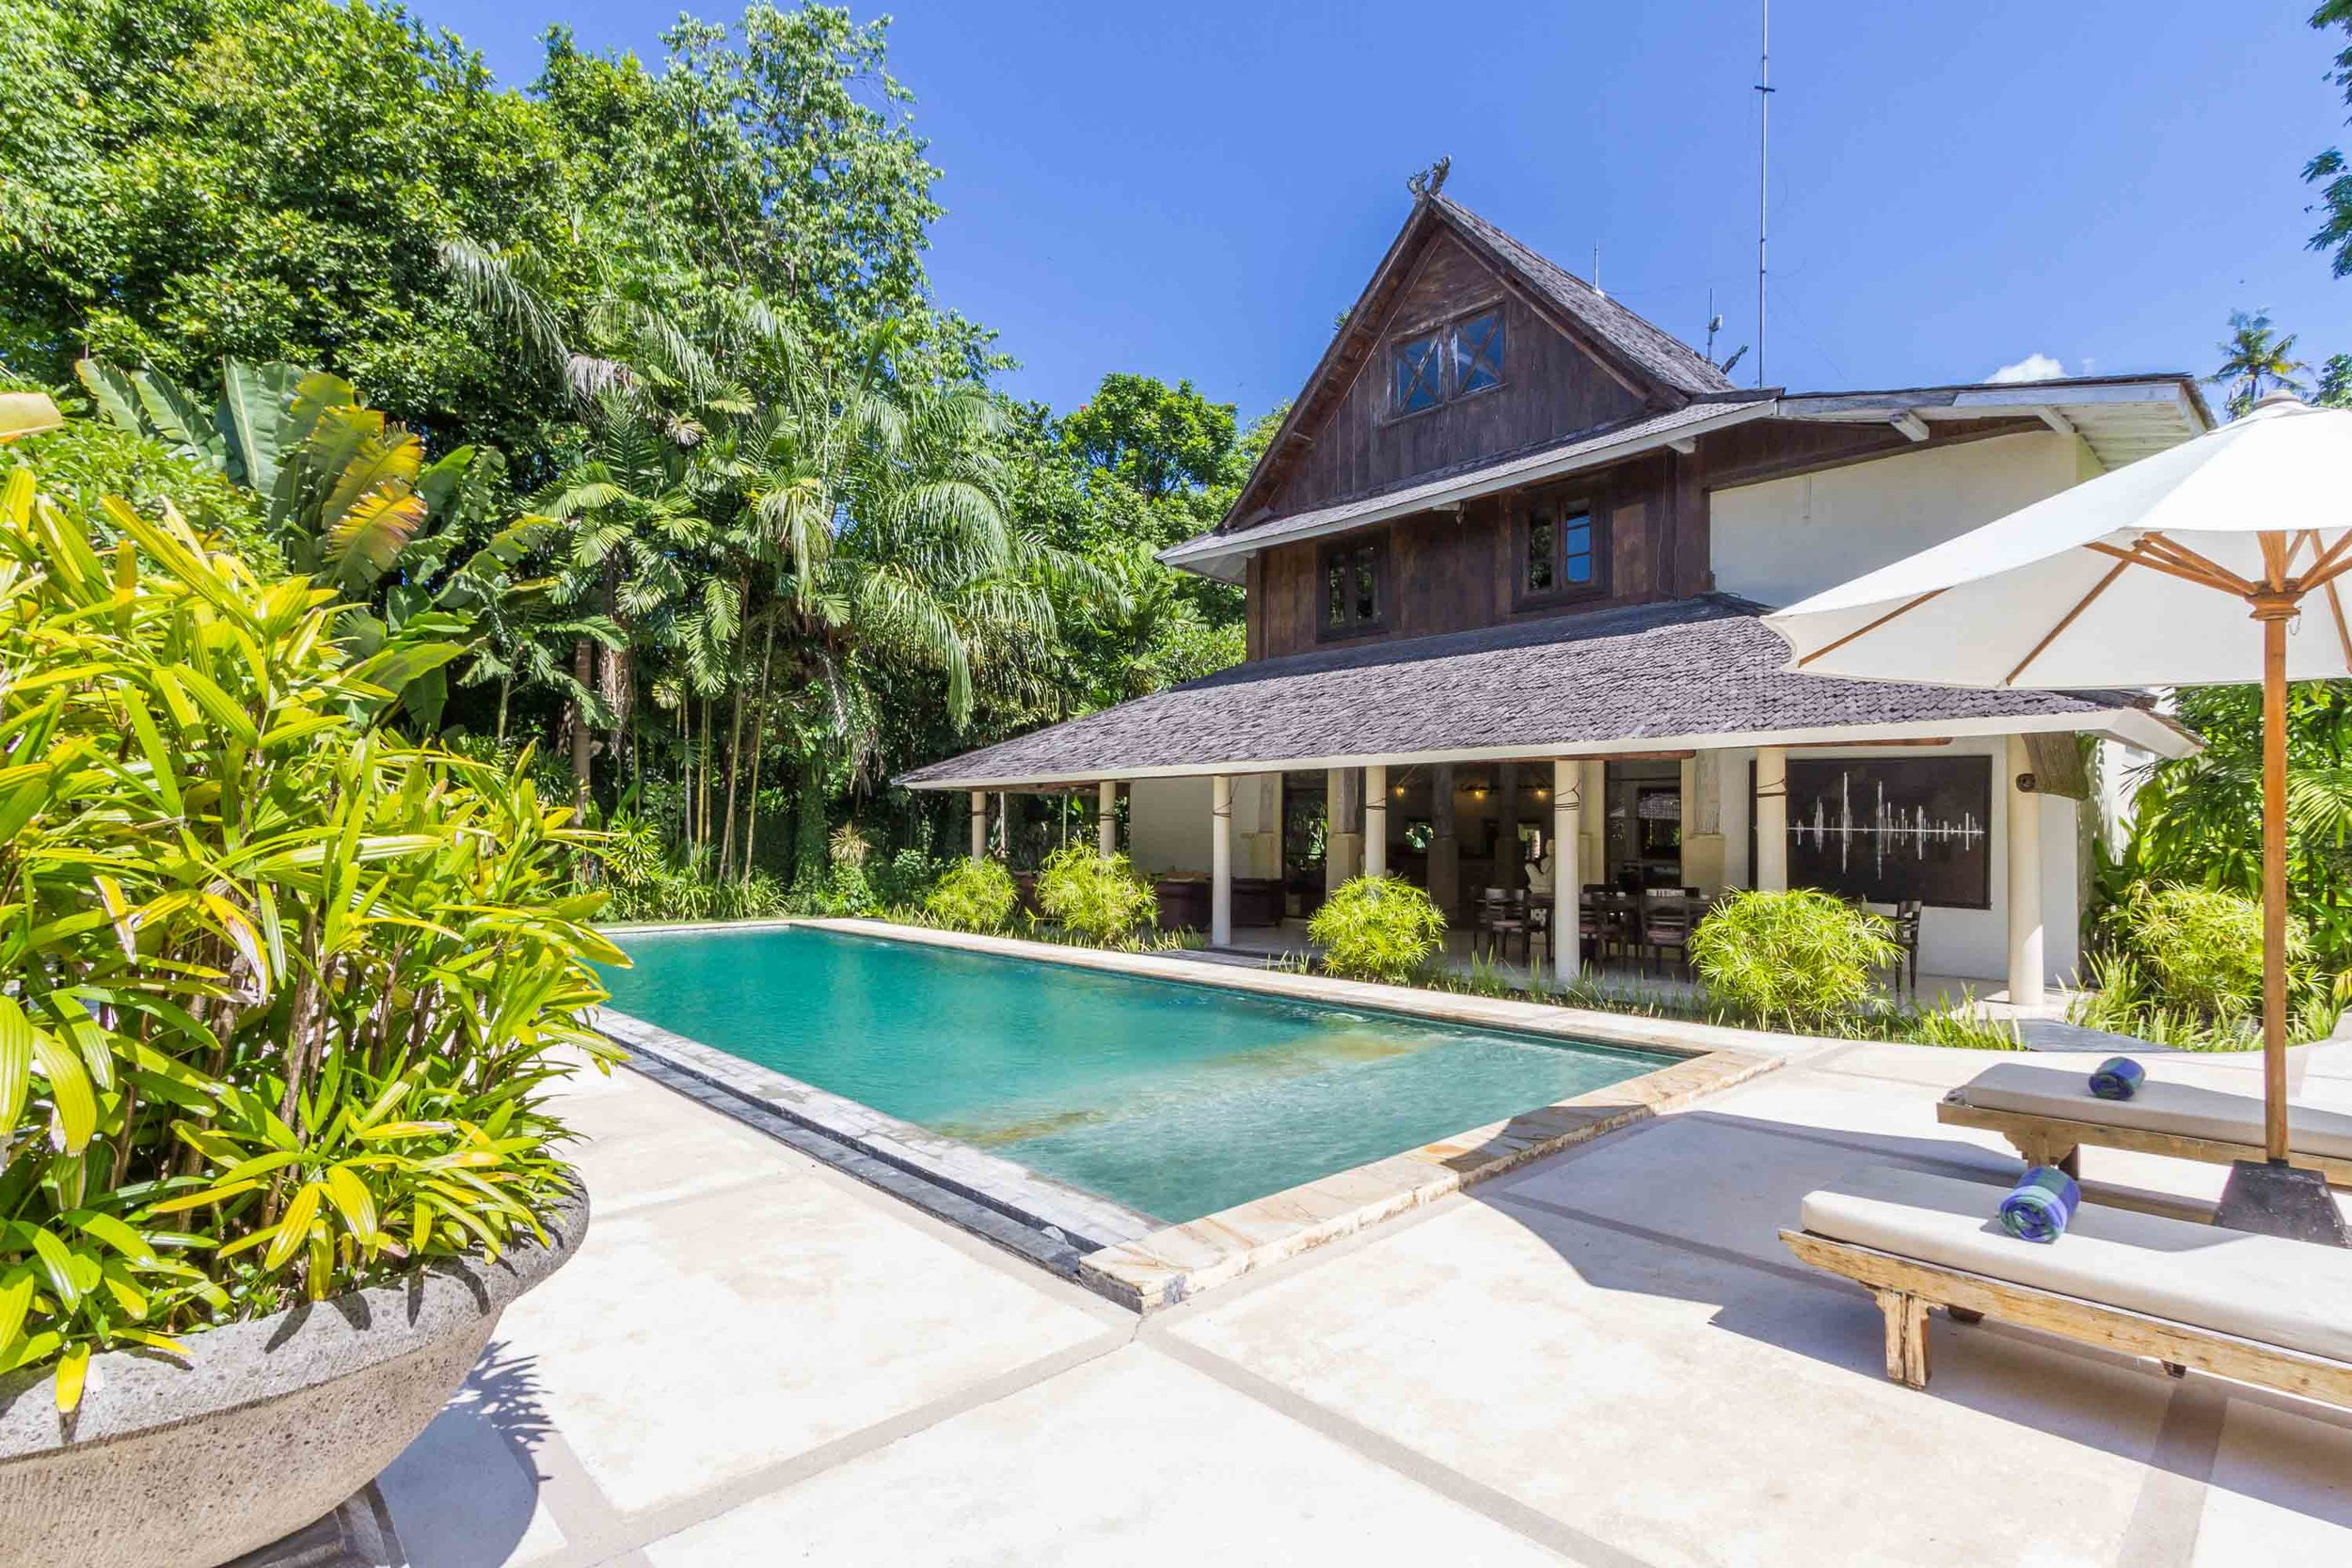 Sumatra culture inspired, exotic design villa nestled in the booming area of Batu belig.